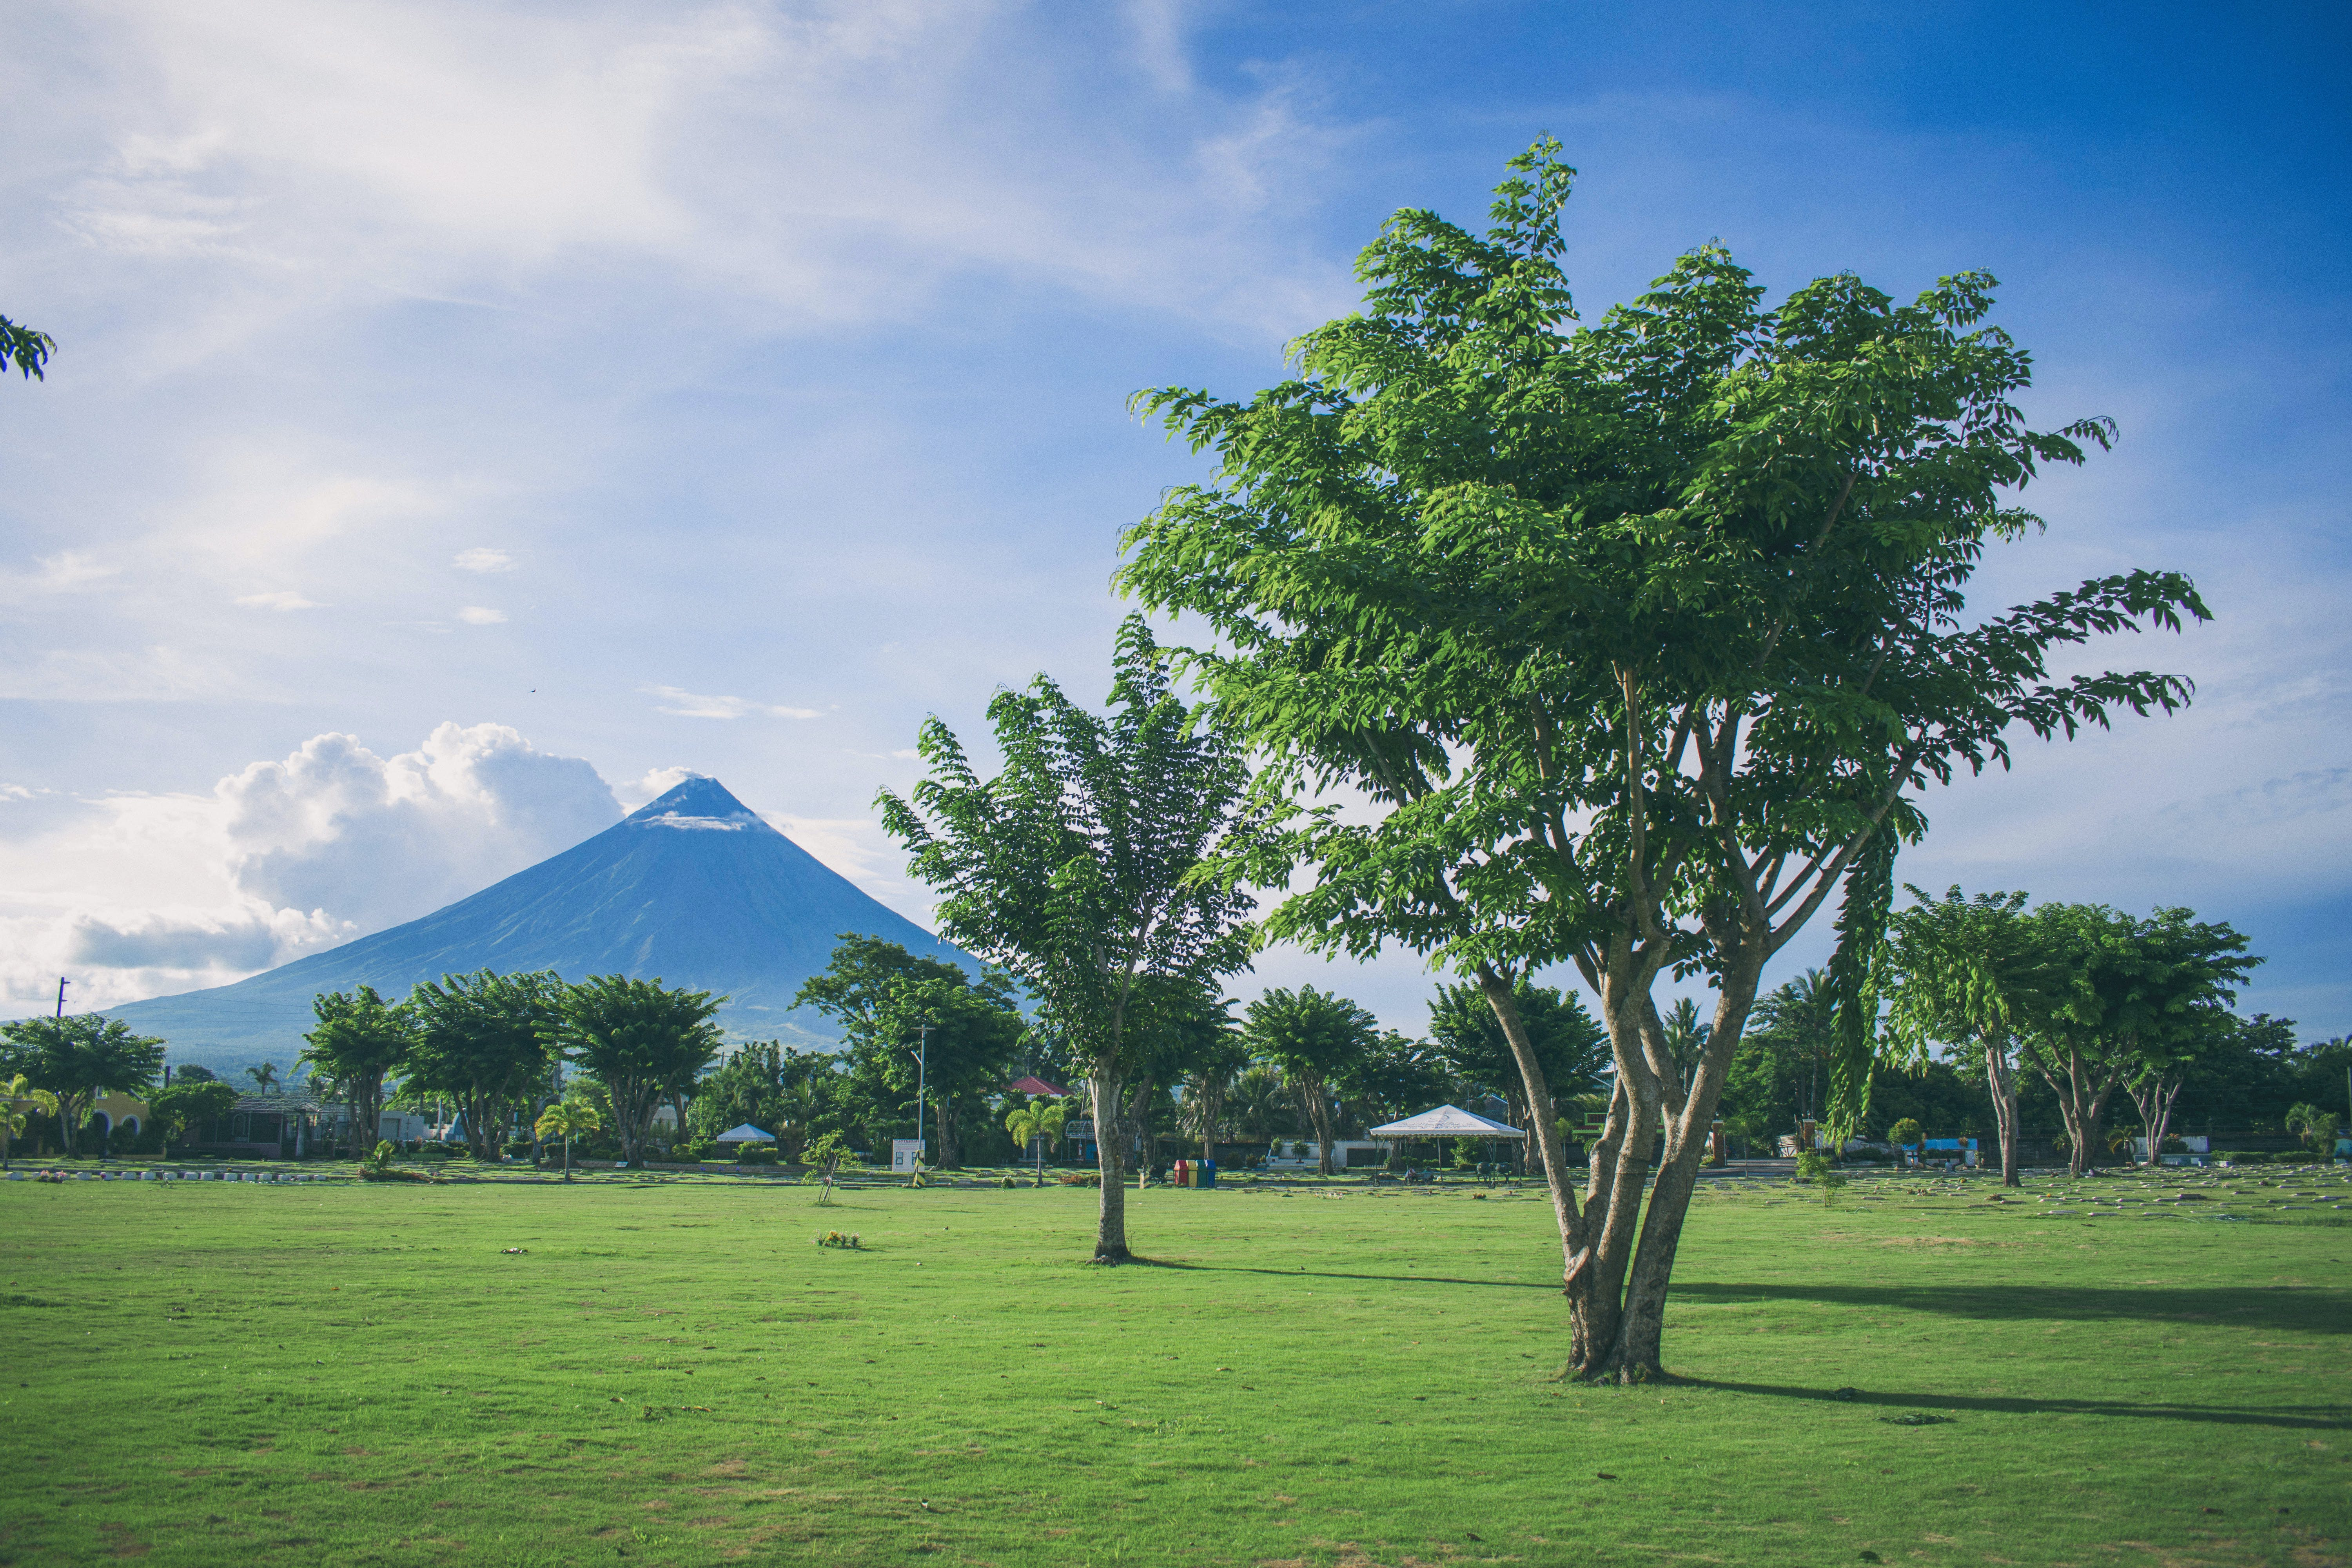 Landscape Photography of Open Field With Tree With Mayon Volcano Background